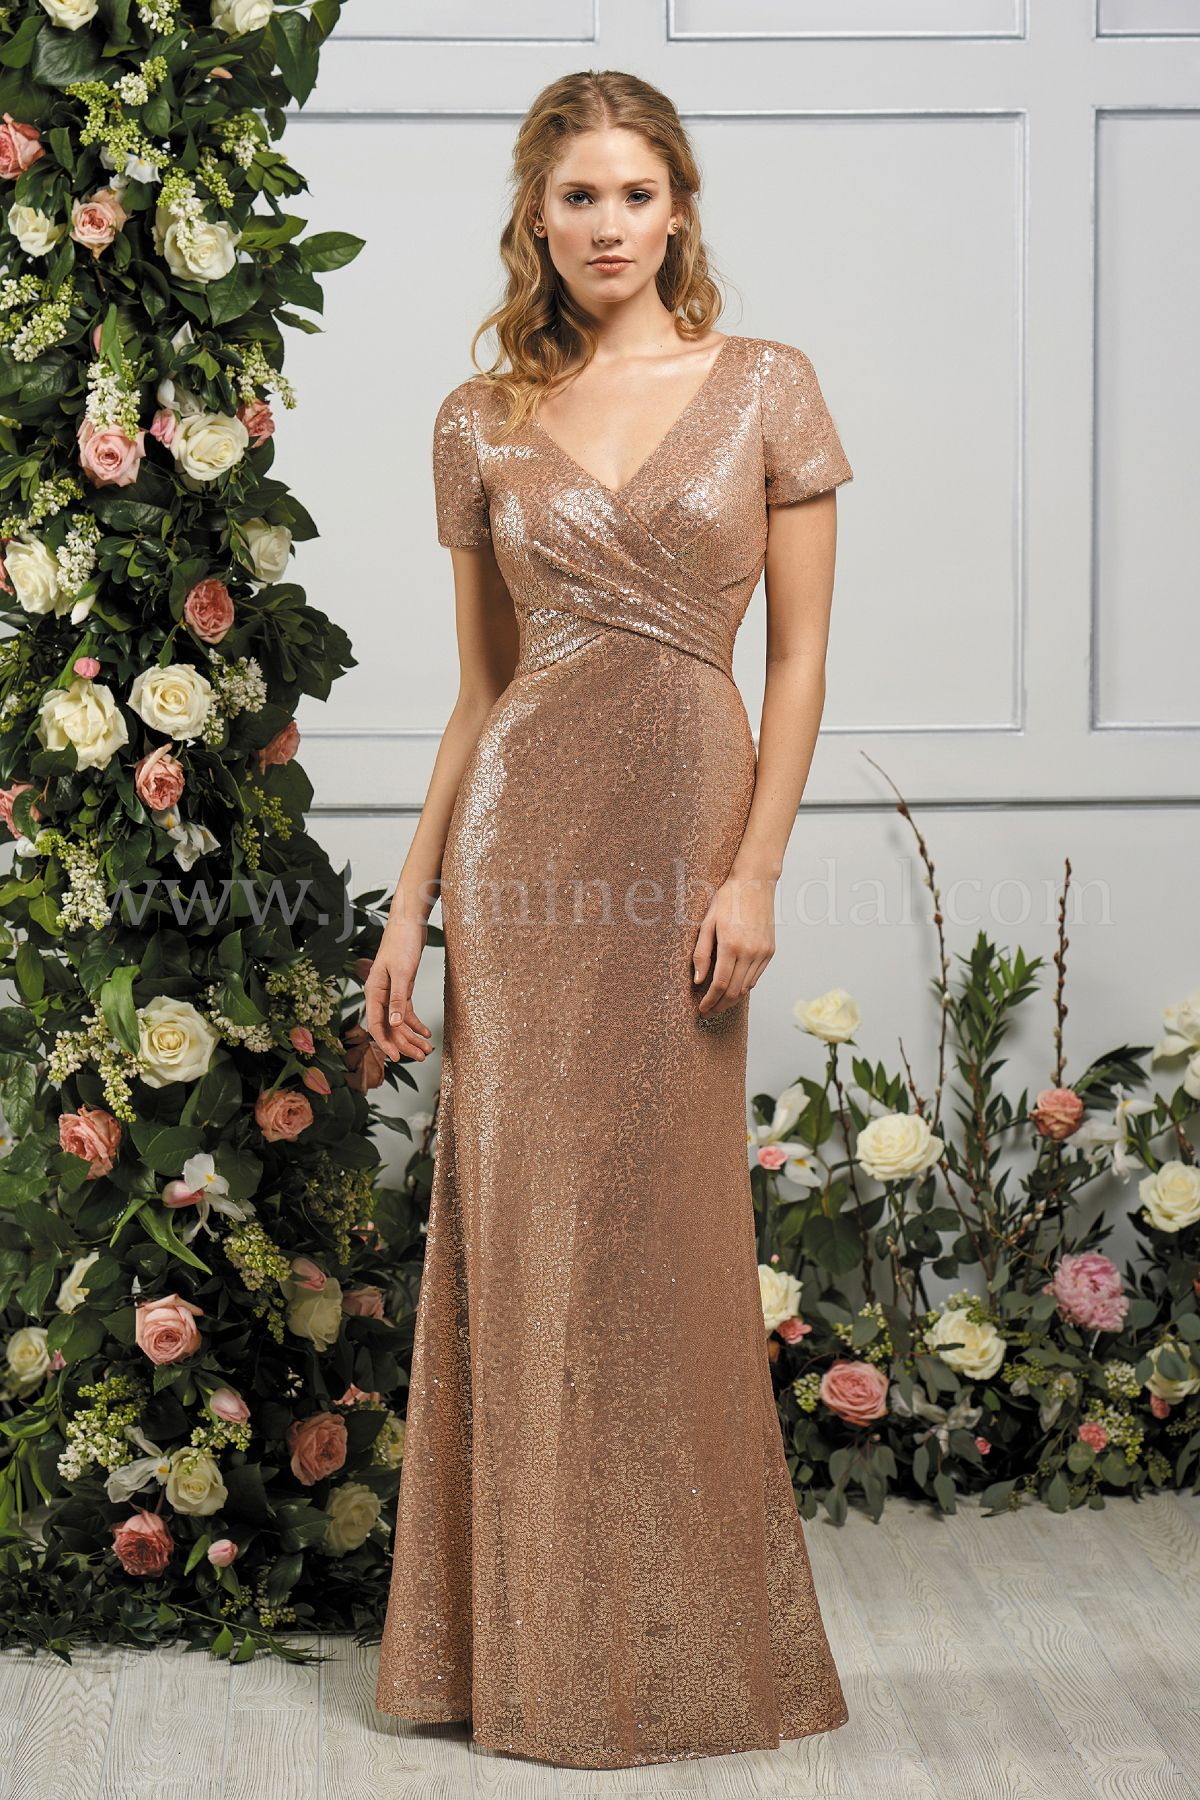 7d2d3cc7ce35 B193066 Long V-neck Sequin Bridesmaid Dress with Short Sleeves